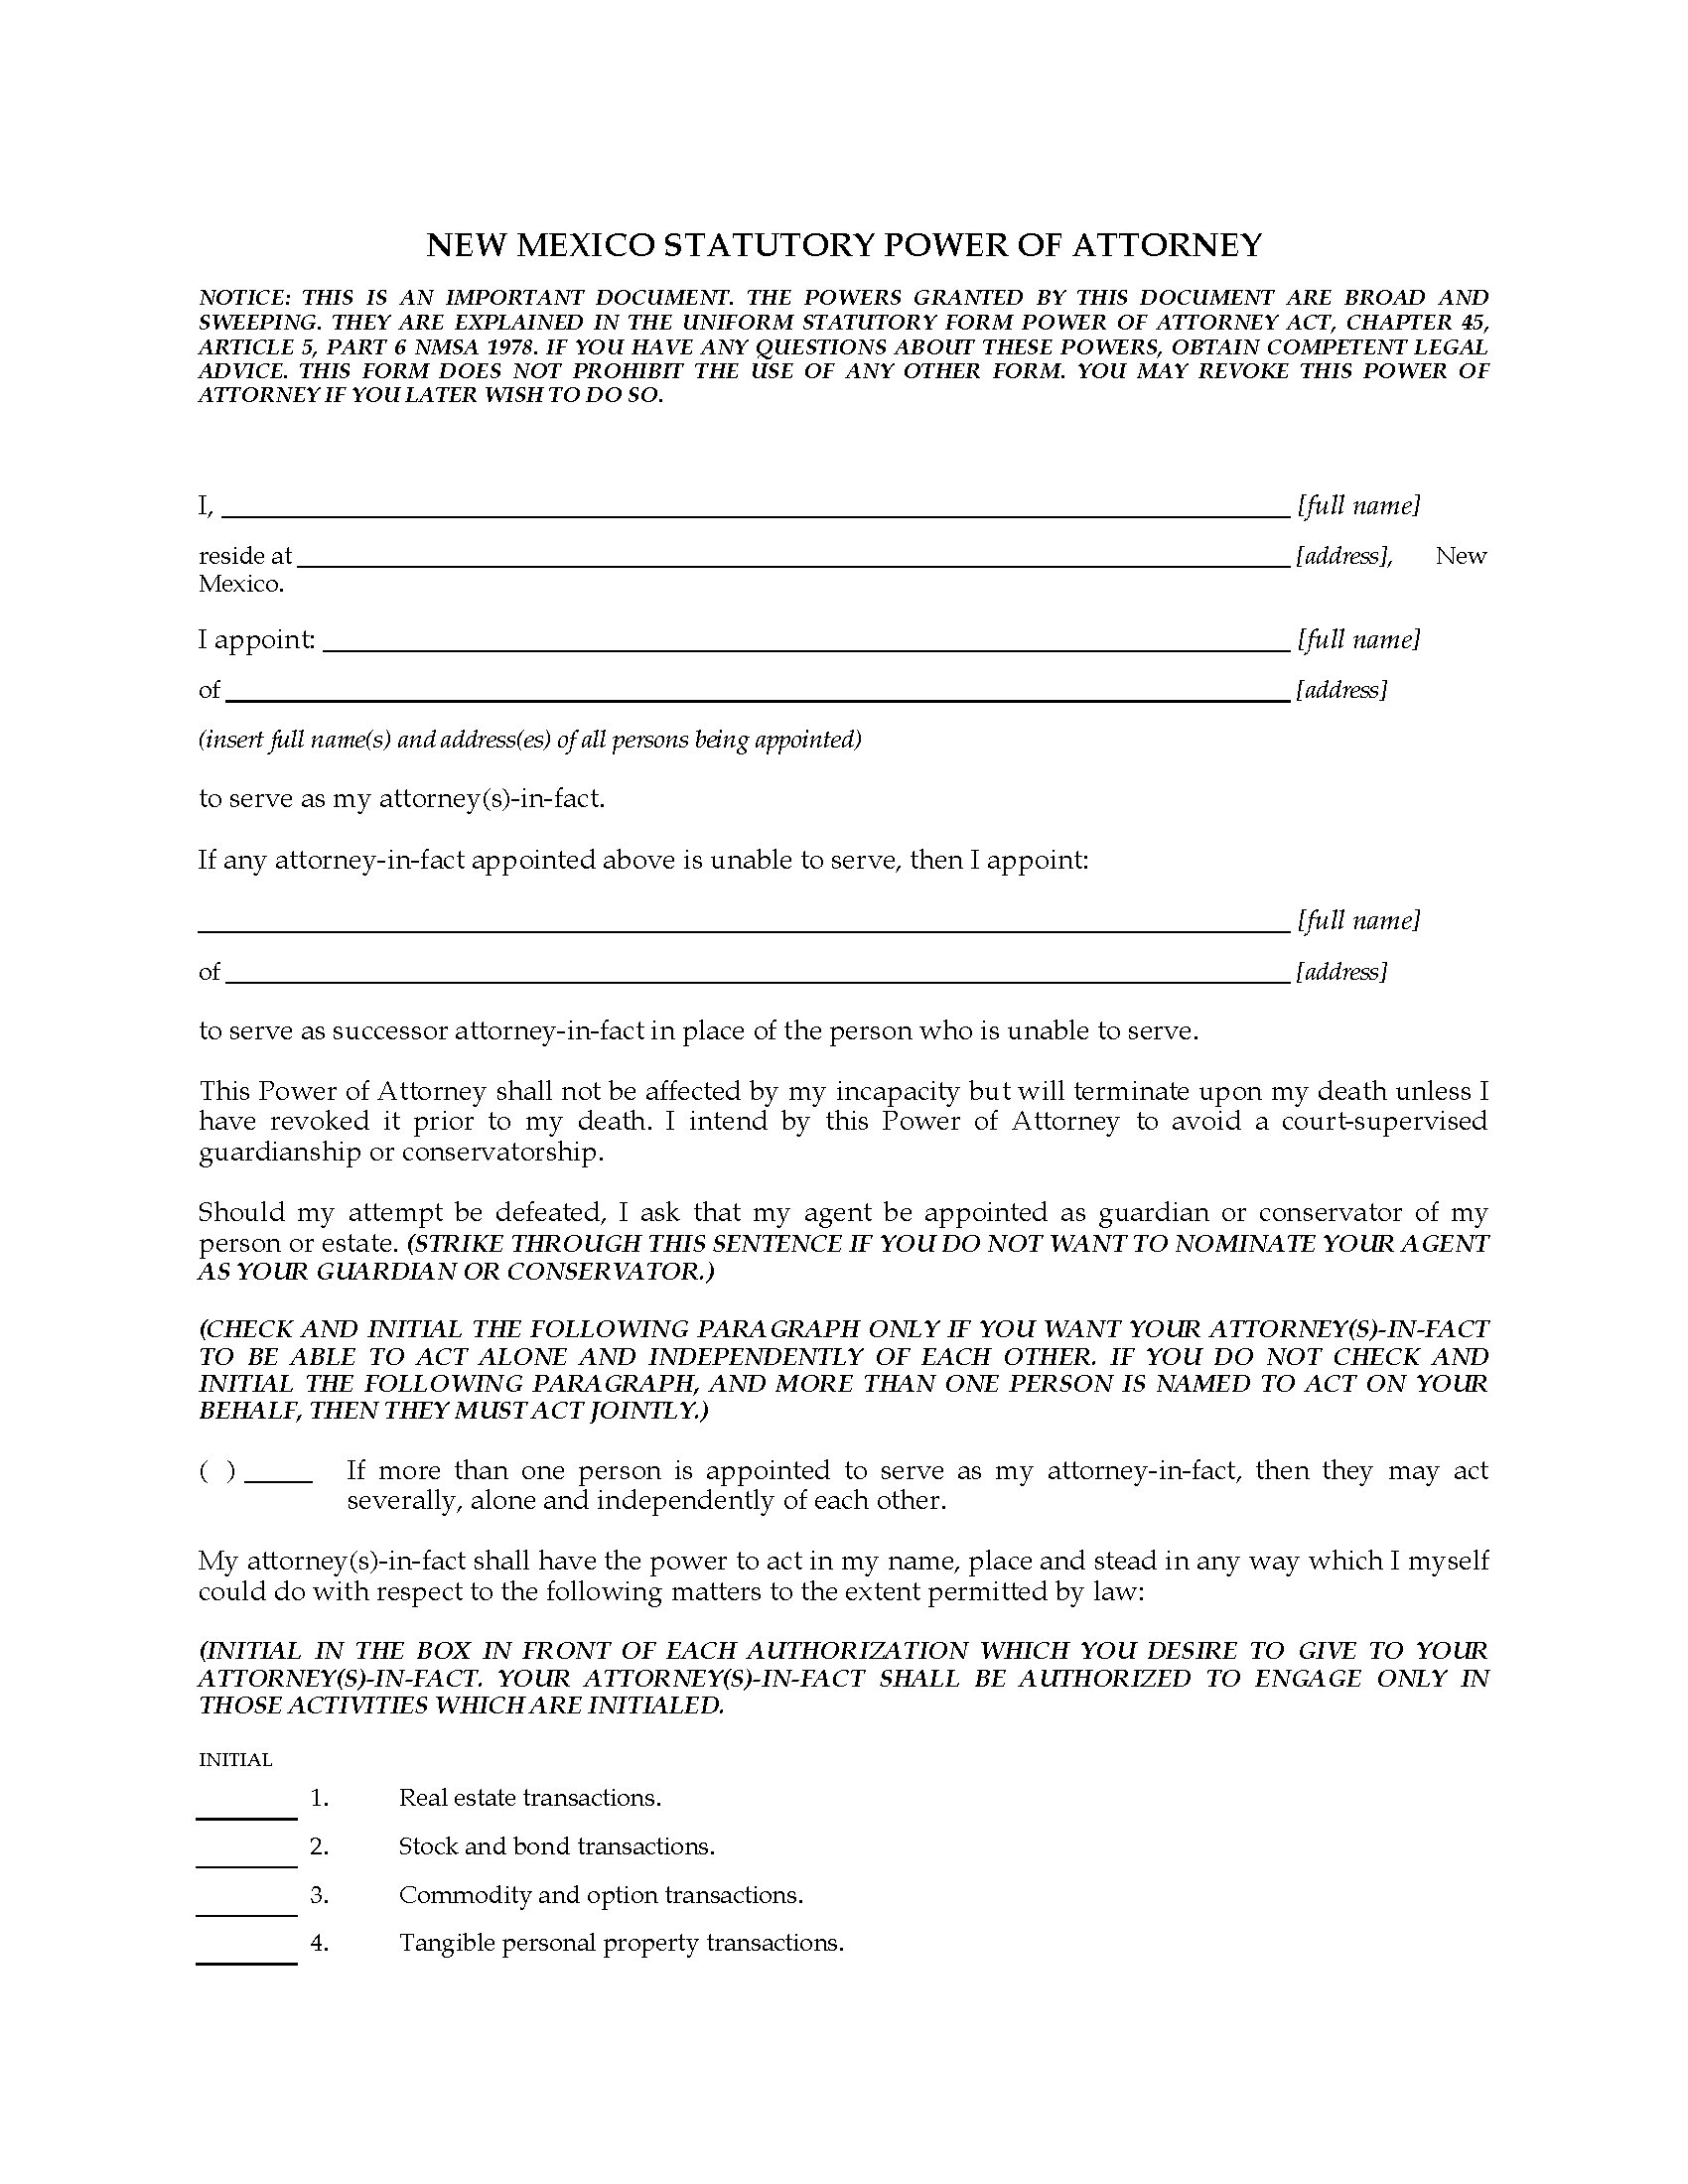 0004251_preview Ohio Uniform Statutory Form Power Of Attorney Act on